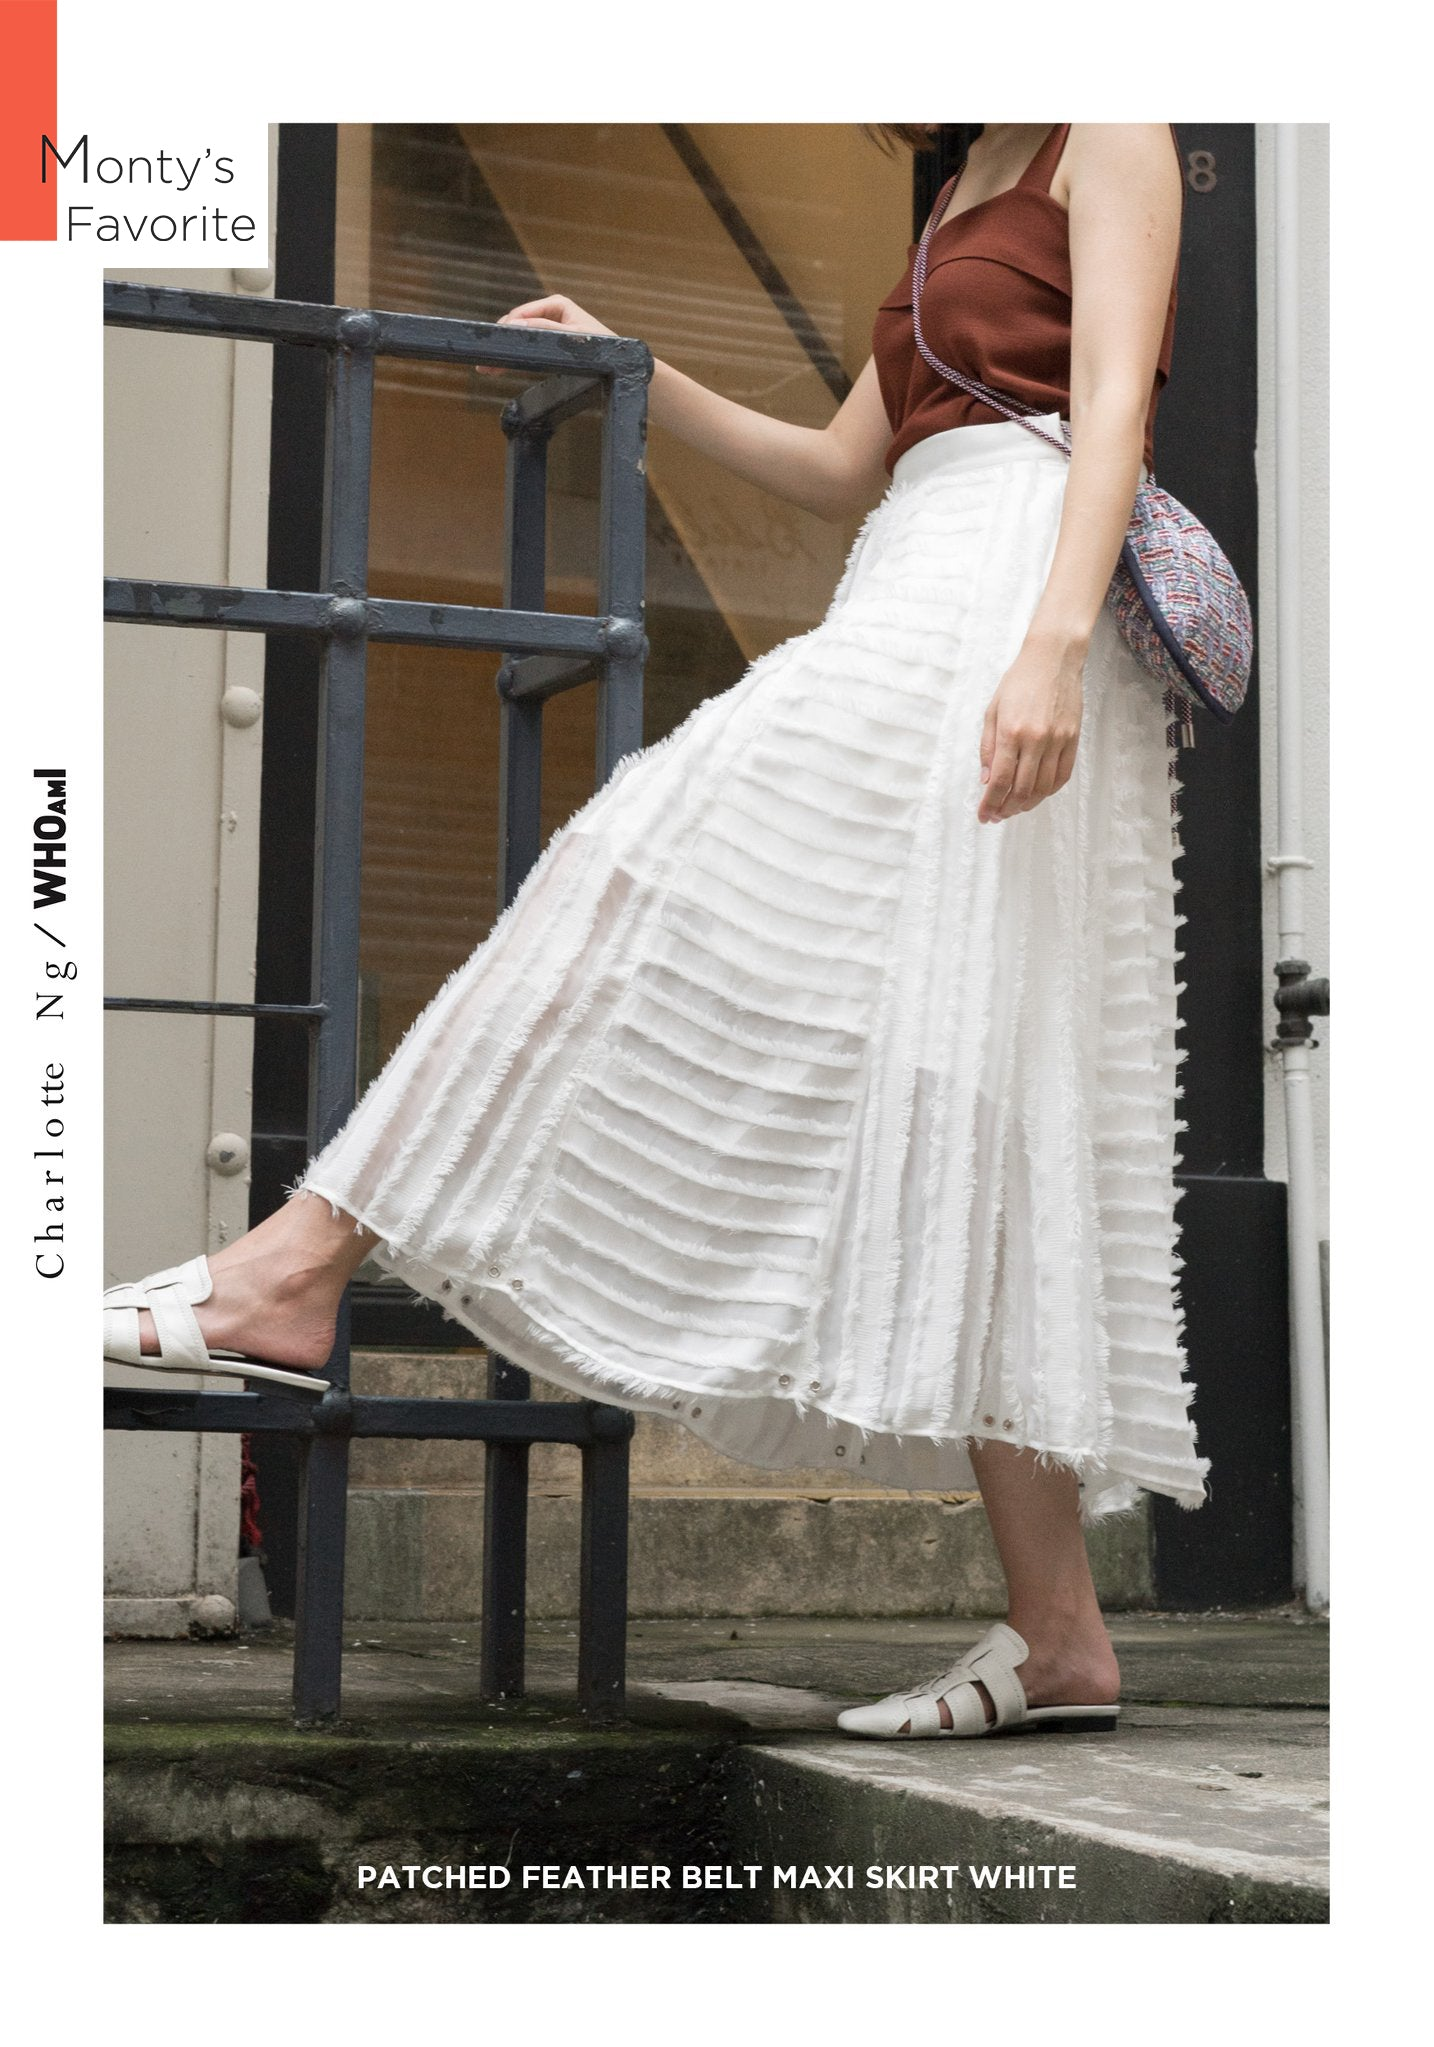 Patched Feather Belt Maxi Skirt White